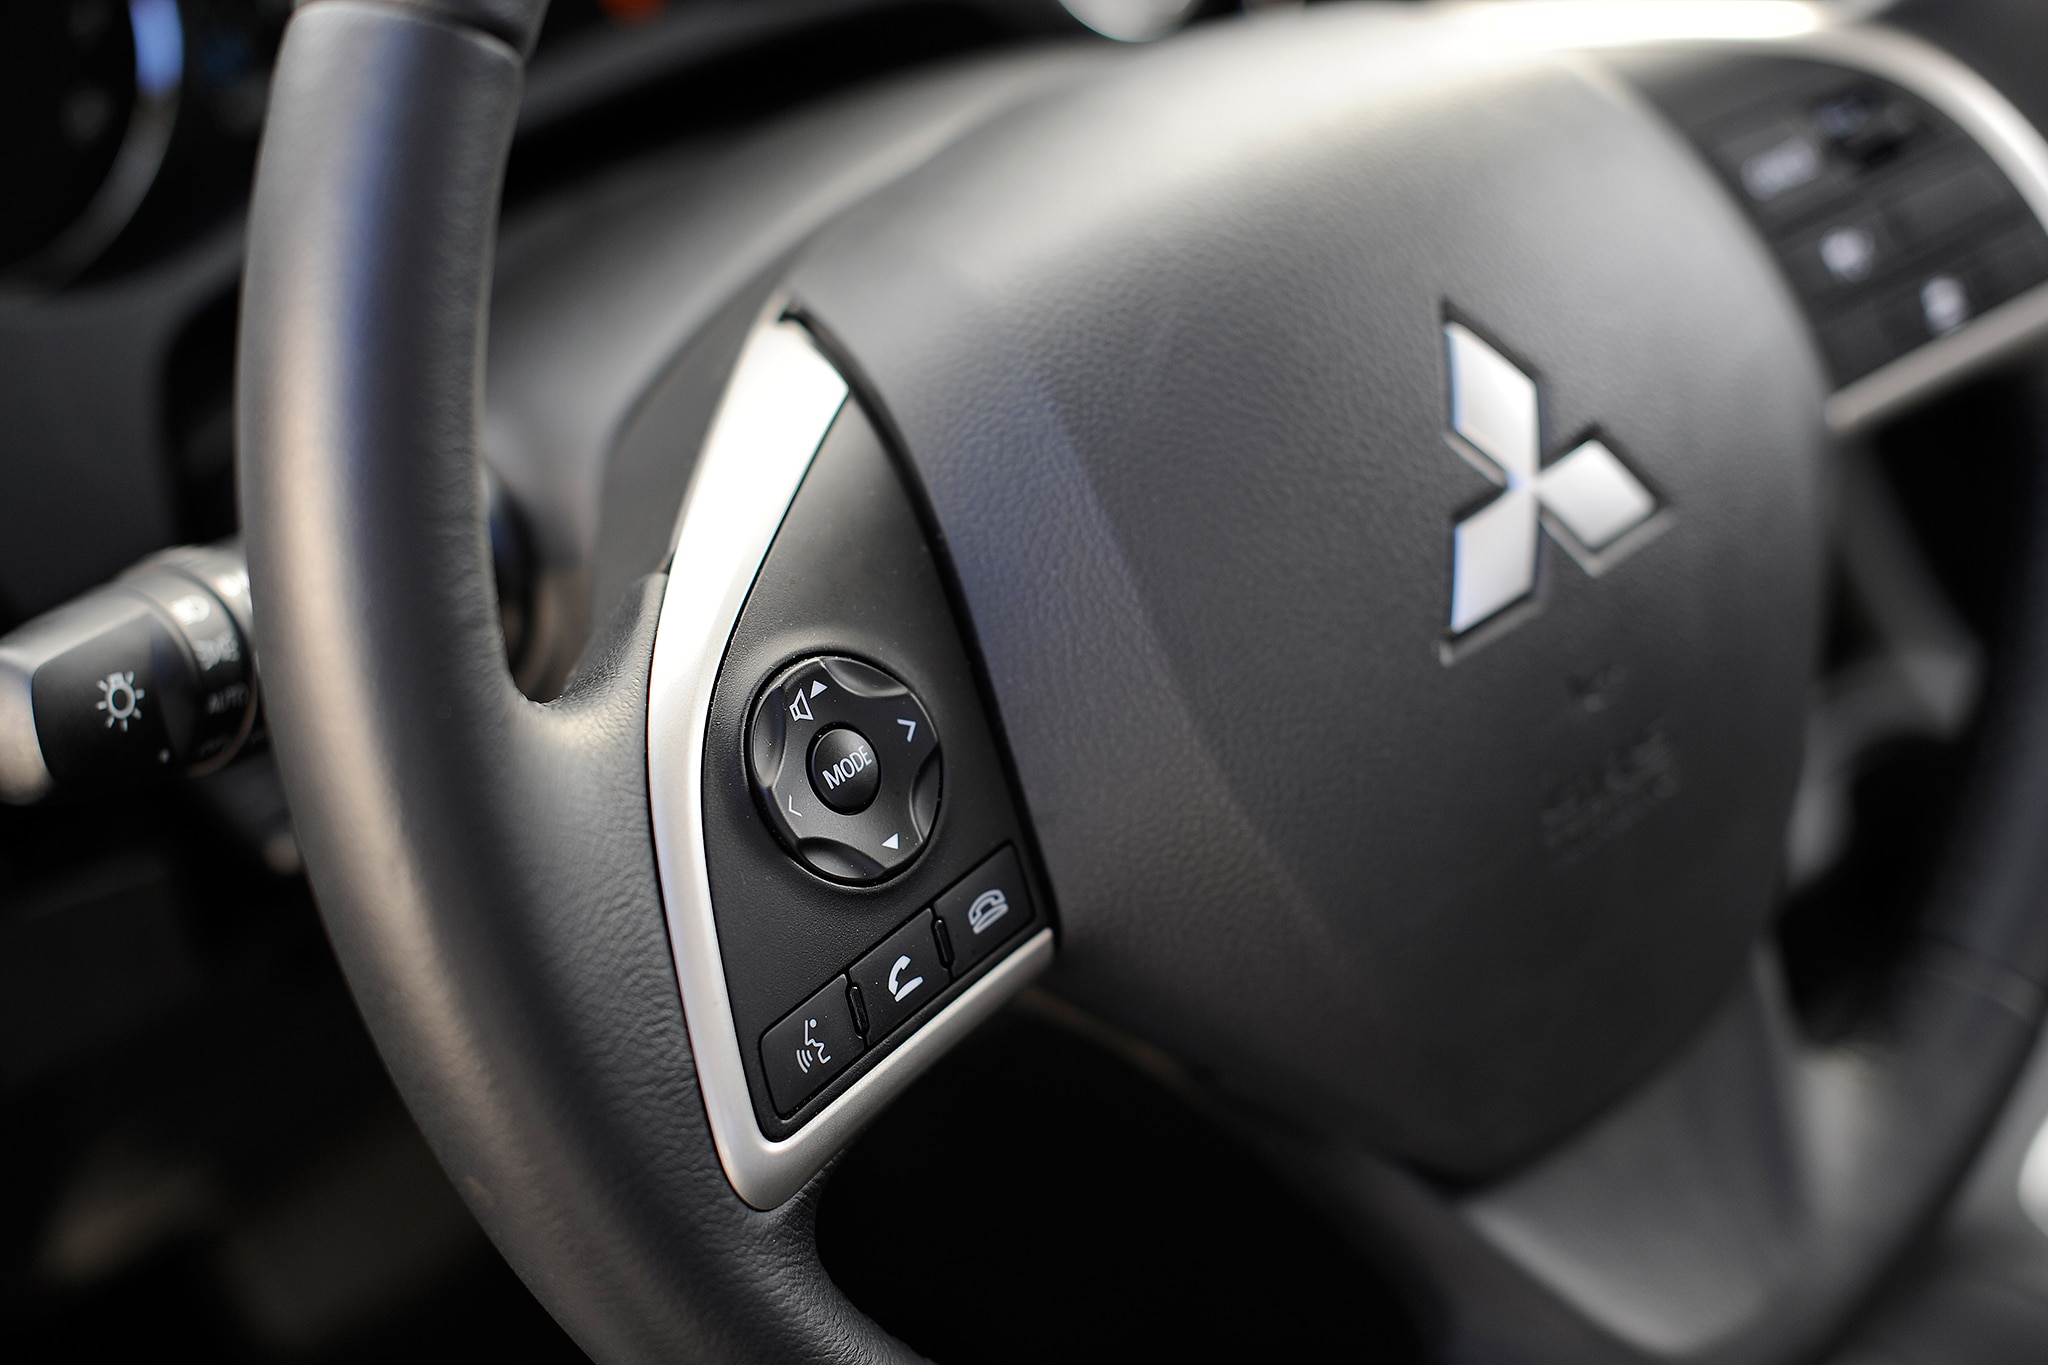 2014 Mitsubishi Outlander Steering Wheel Detail